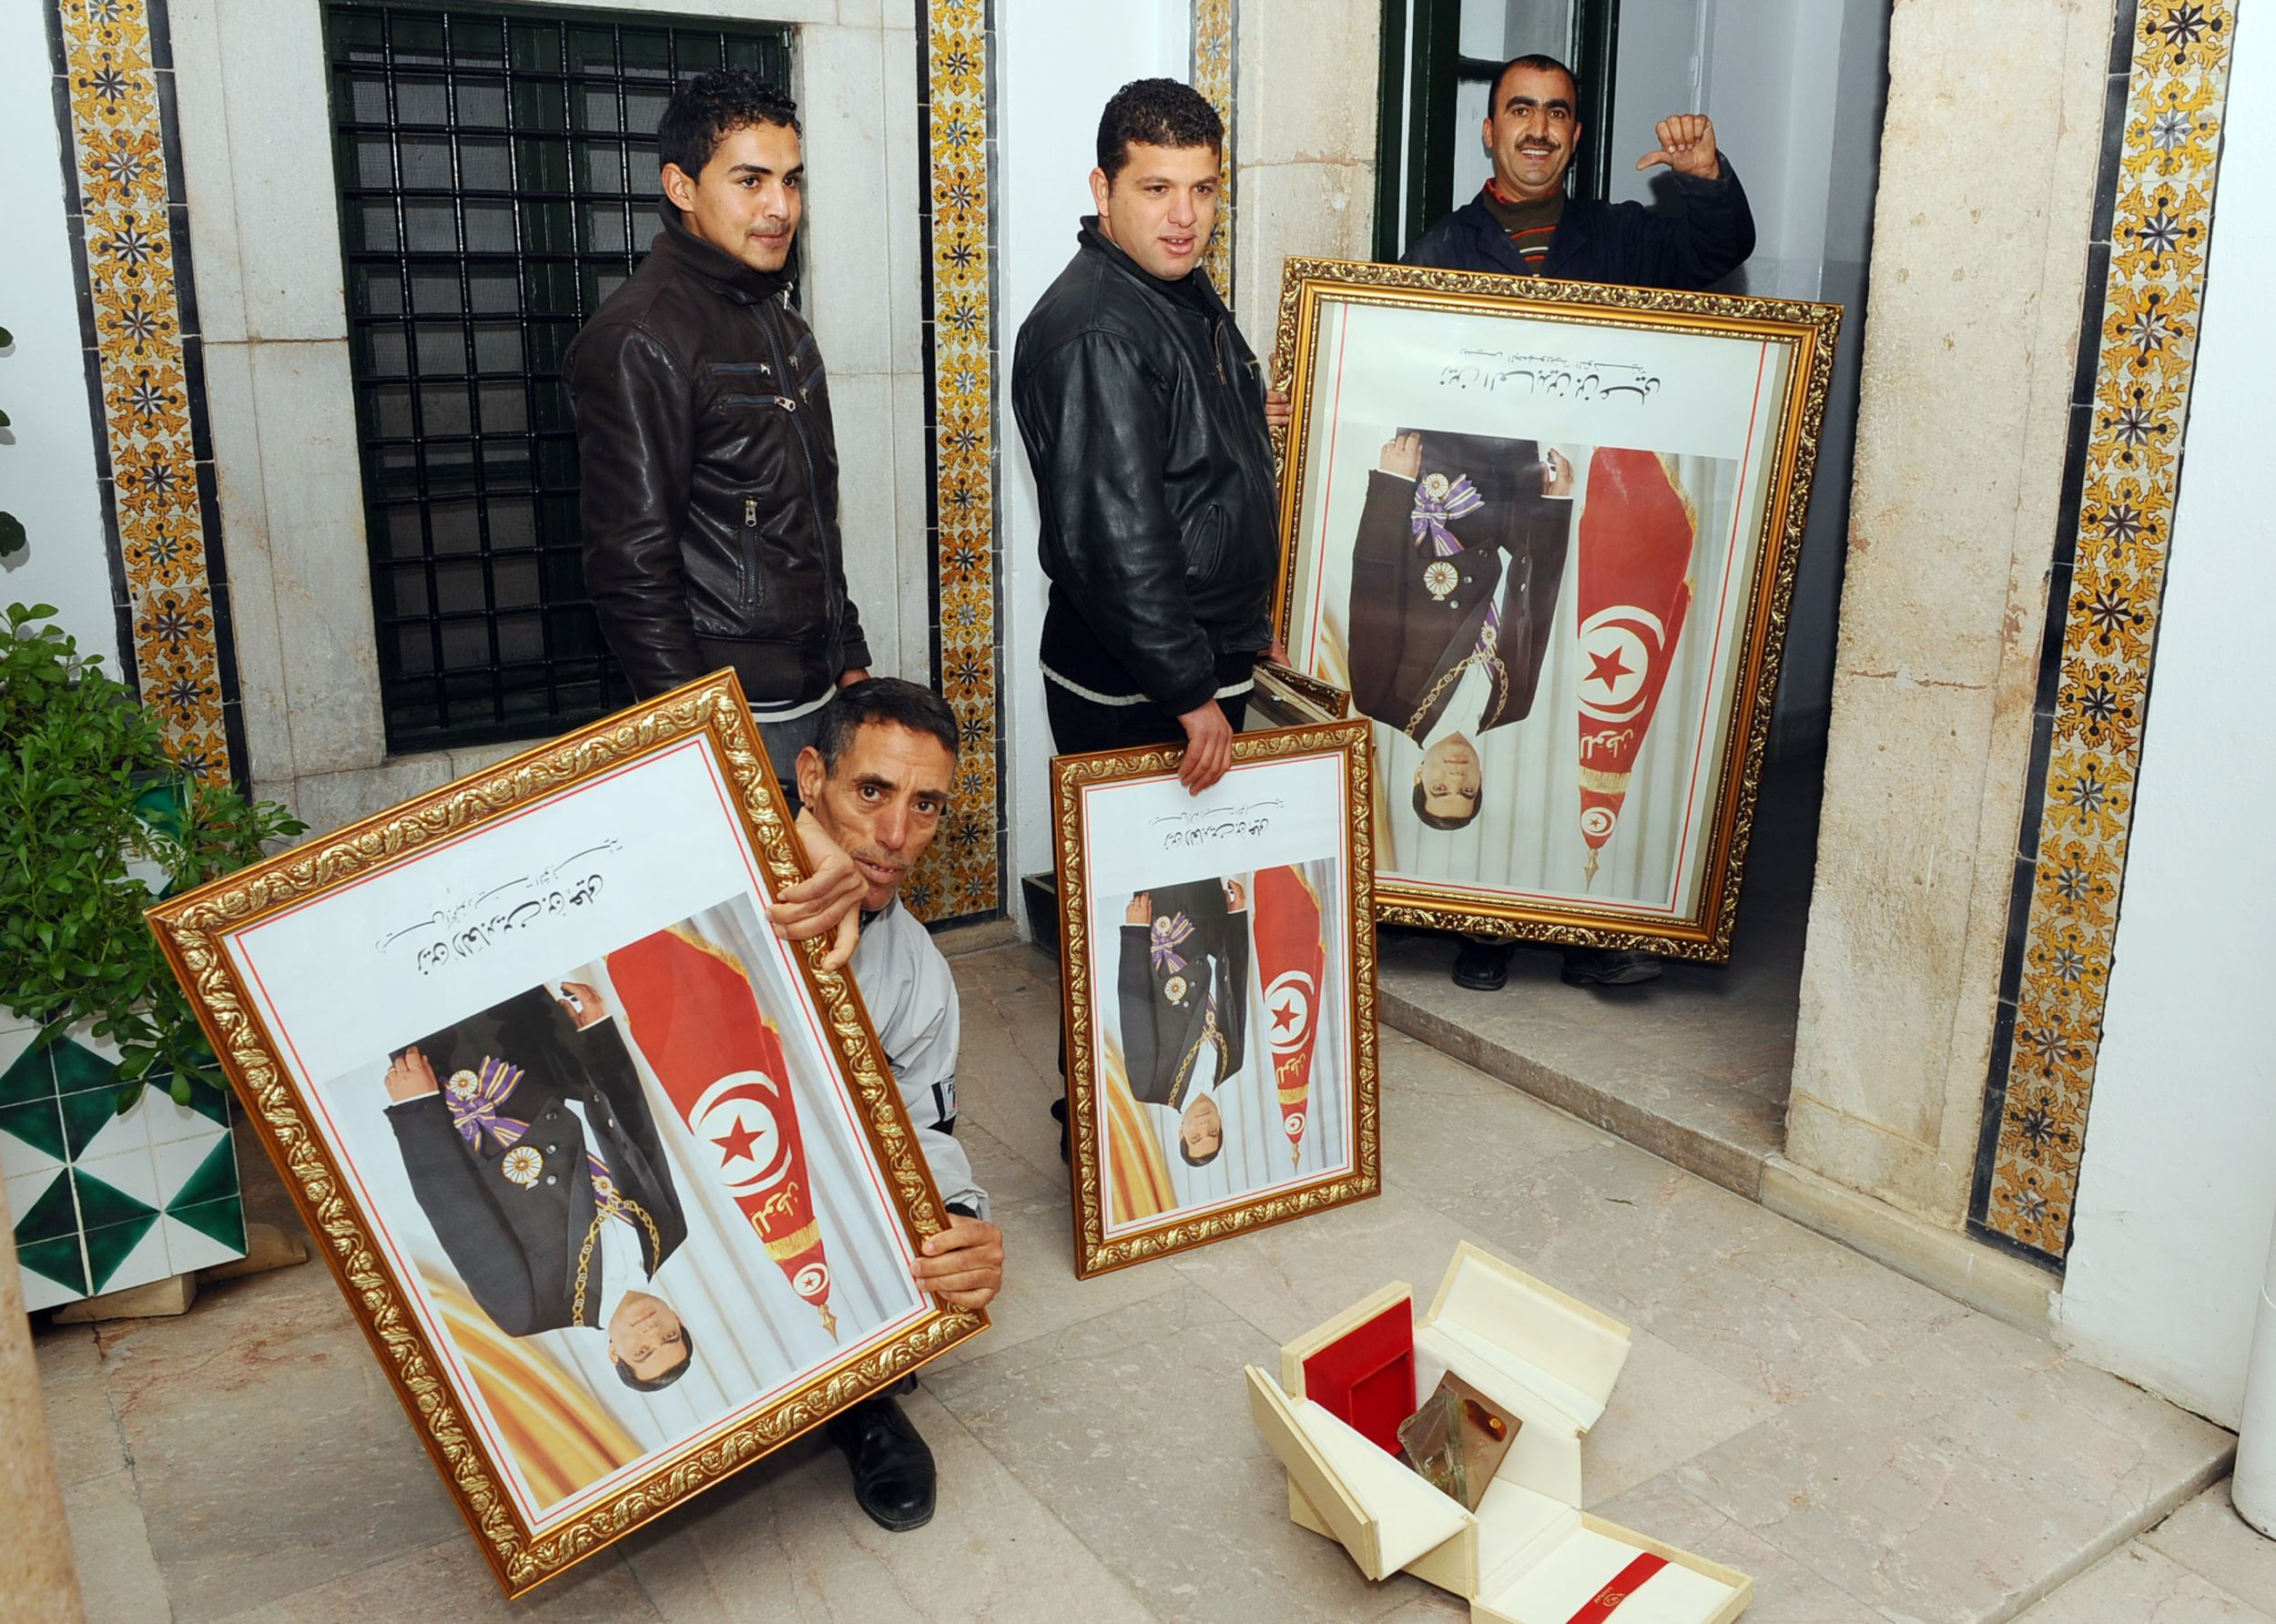 Tunisian employees of the Prime ministry remove portraits of Ben Ali on 17 January 2011, three days after he fled the country following a month of protests (AFP)